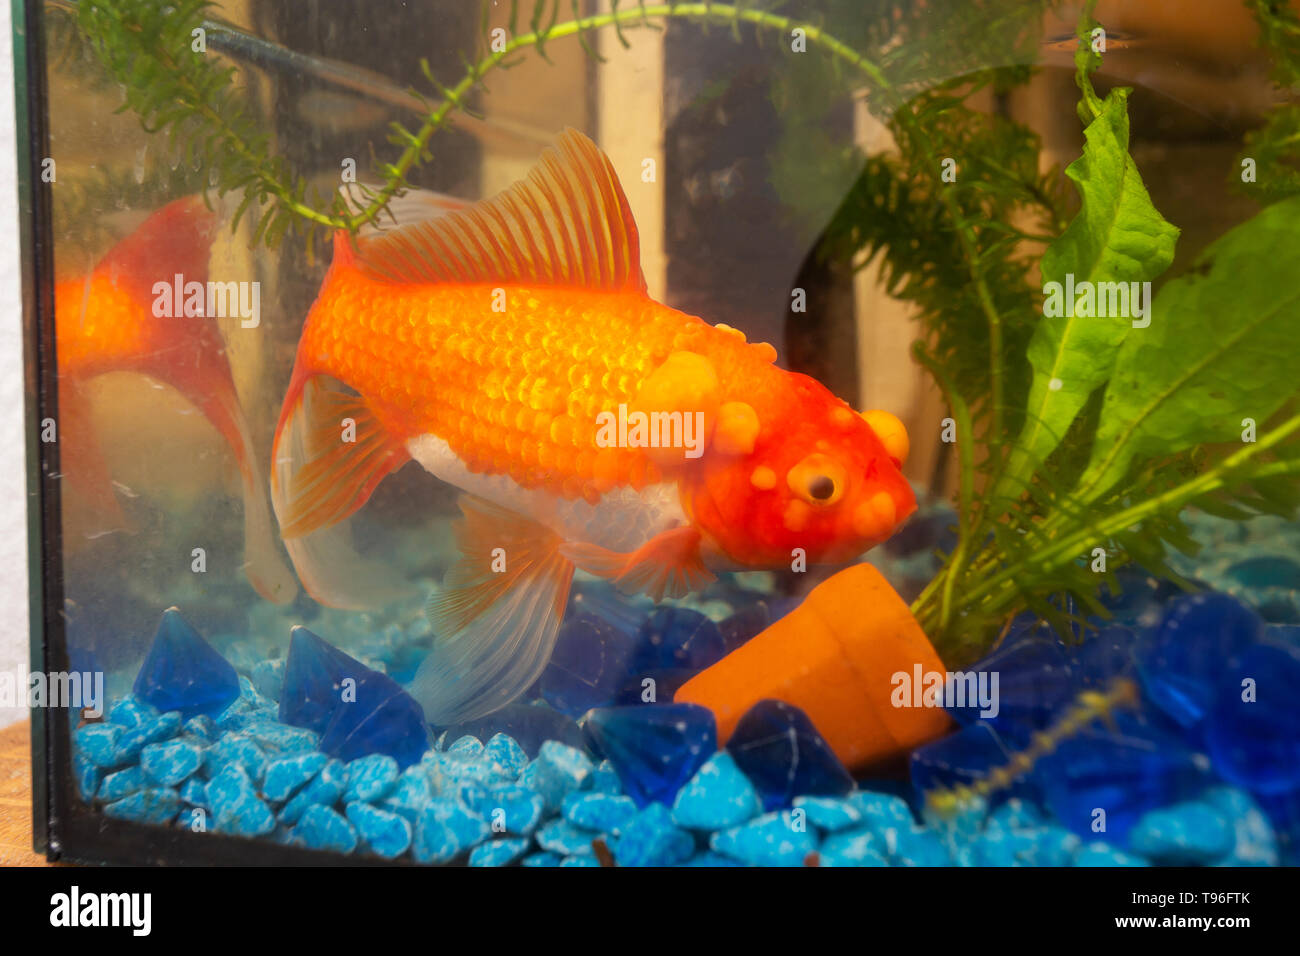 Sick goldfish with bumbs on its scale, fish bowl - Stock Image